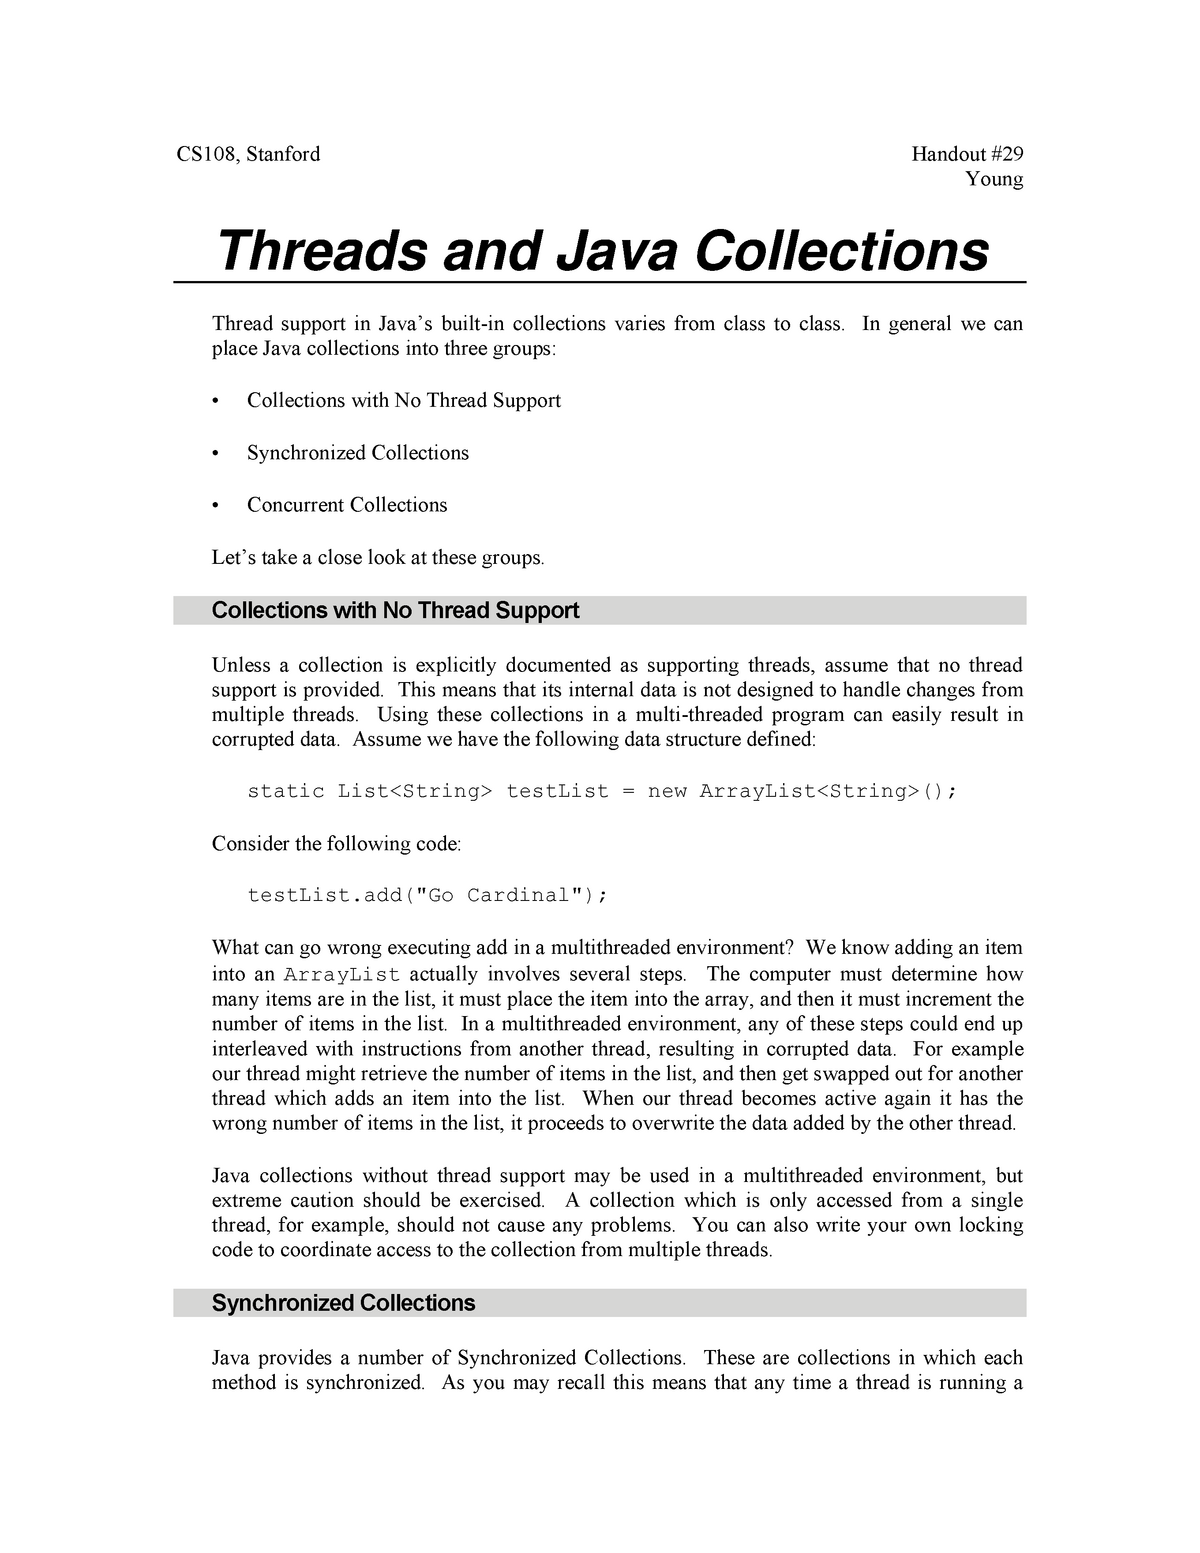 29Java Collections And Threads - CS 108: Object-Oriented Systems